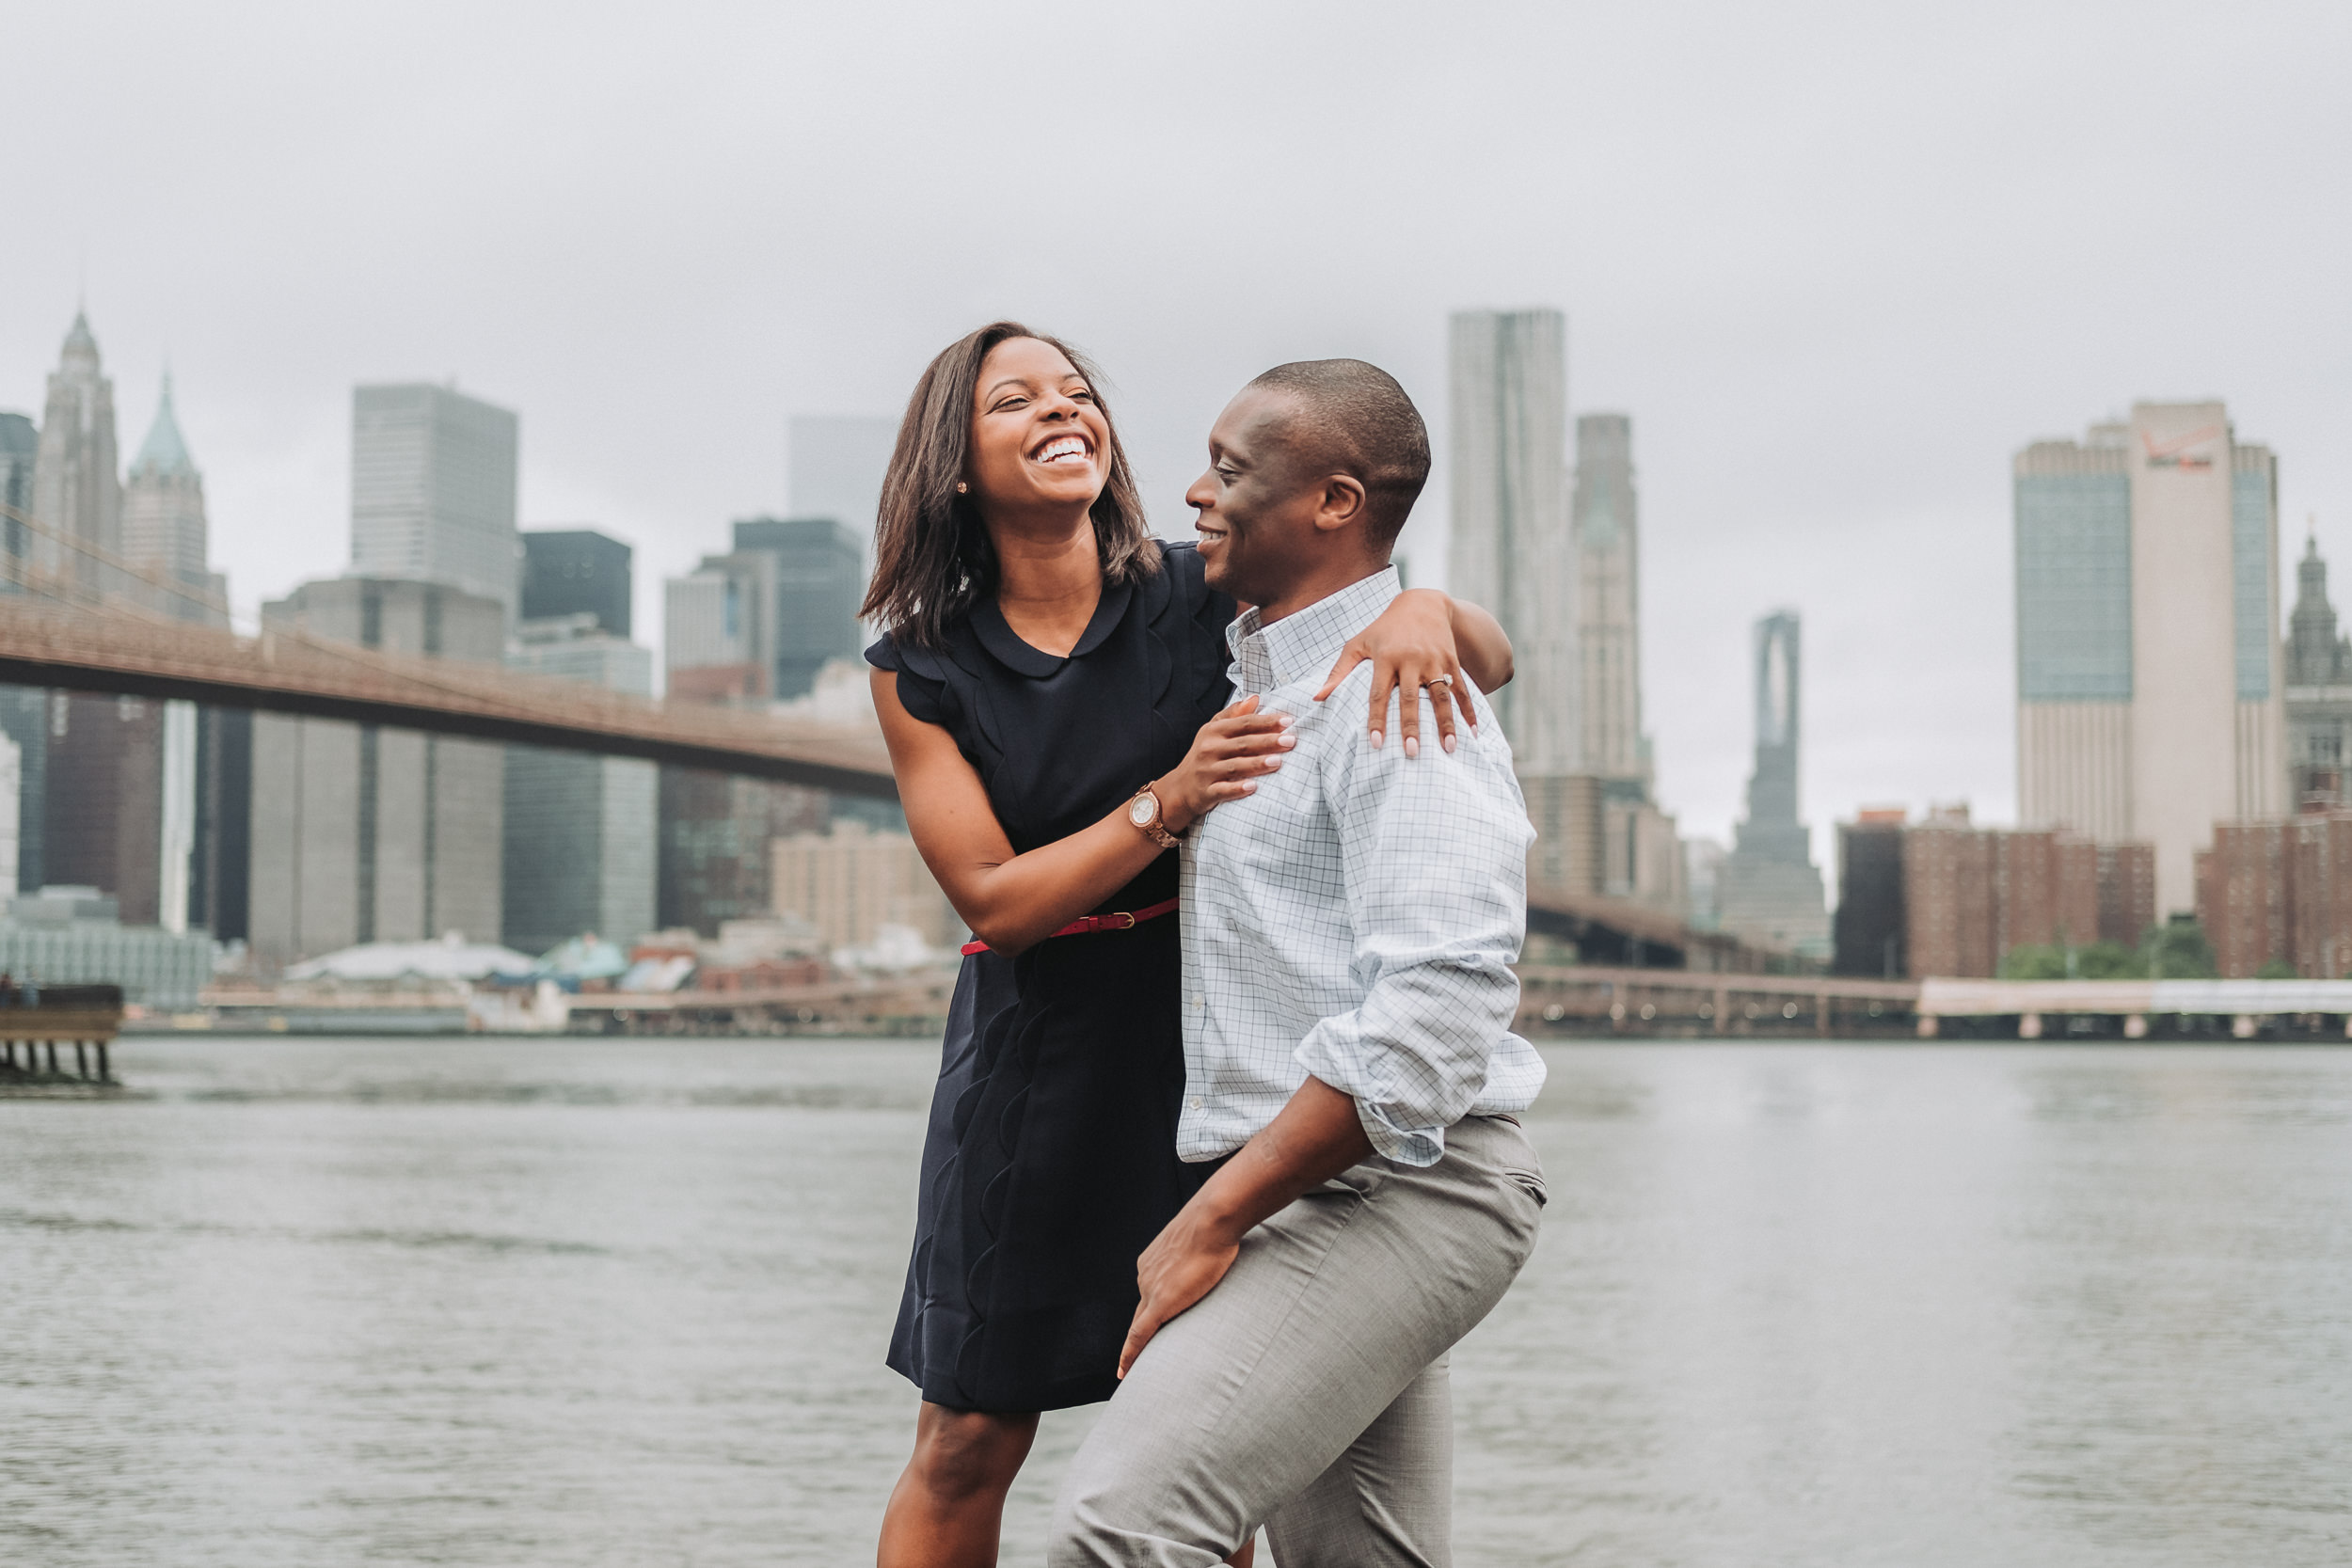 Engagements - Excitement is in the air, let's not miss this moment! Engagement sessions are great for getting your save the dates ready and having a fun celebratory day soon after your engagement. Not only will it be a fun day, you'll get to meet your wedding photographer!$650